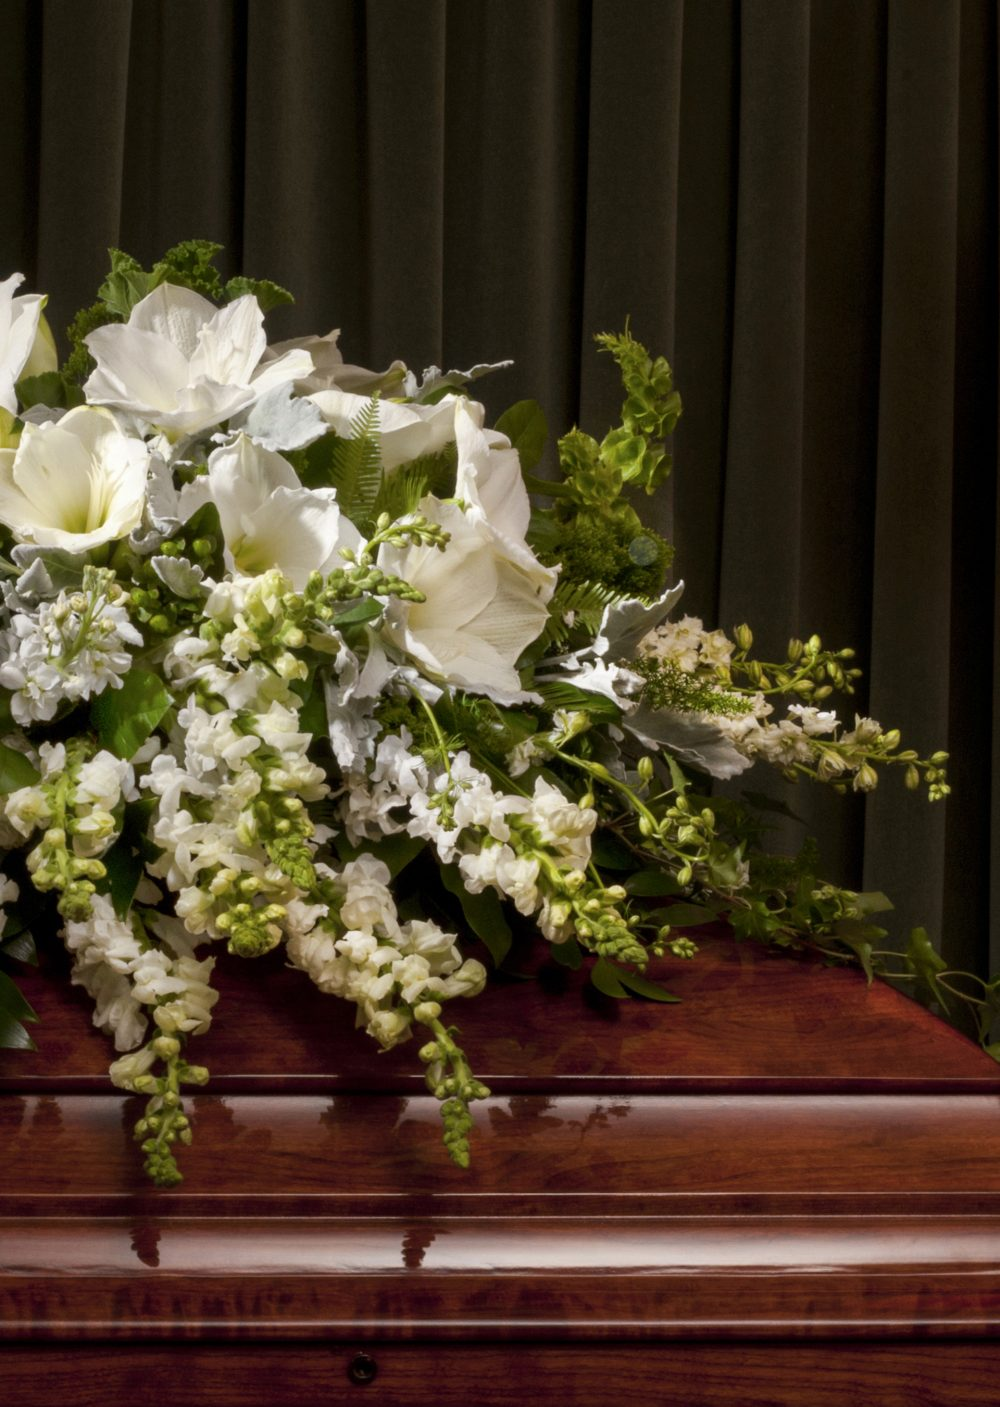 Lush beautiful fresh flower casket sprays for full or half casket funeral, designed to rest on top of casket.